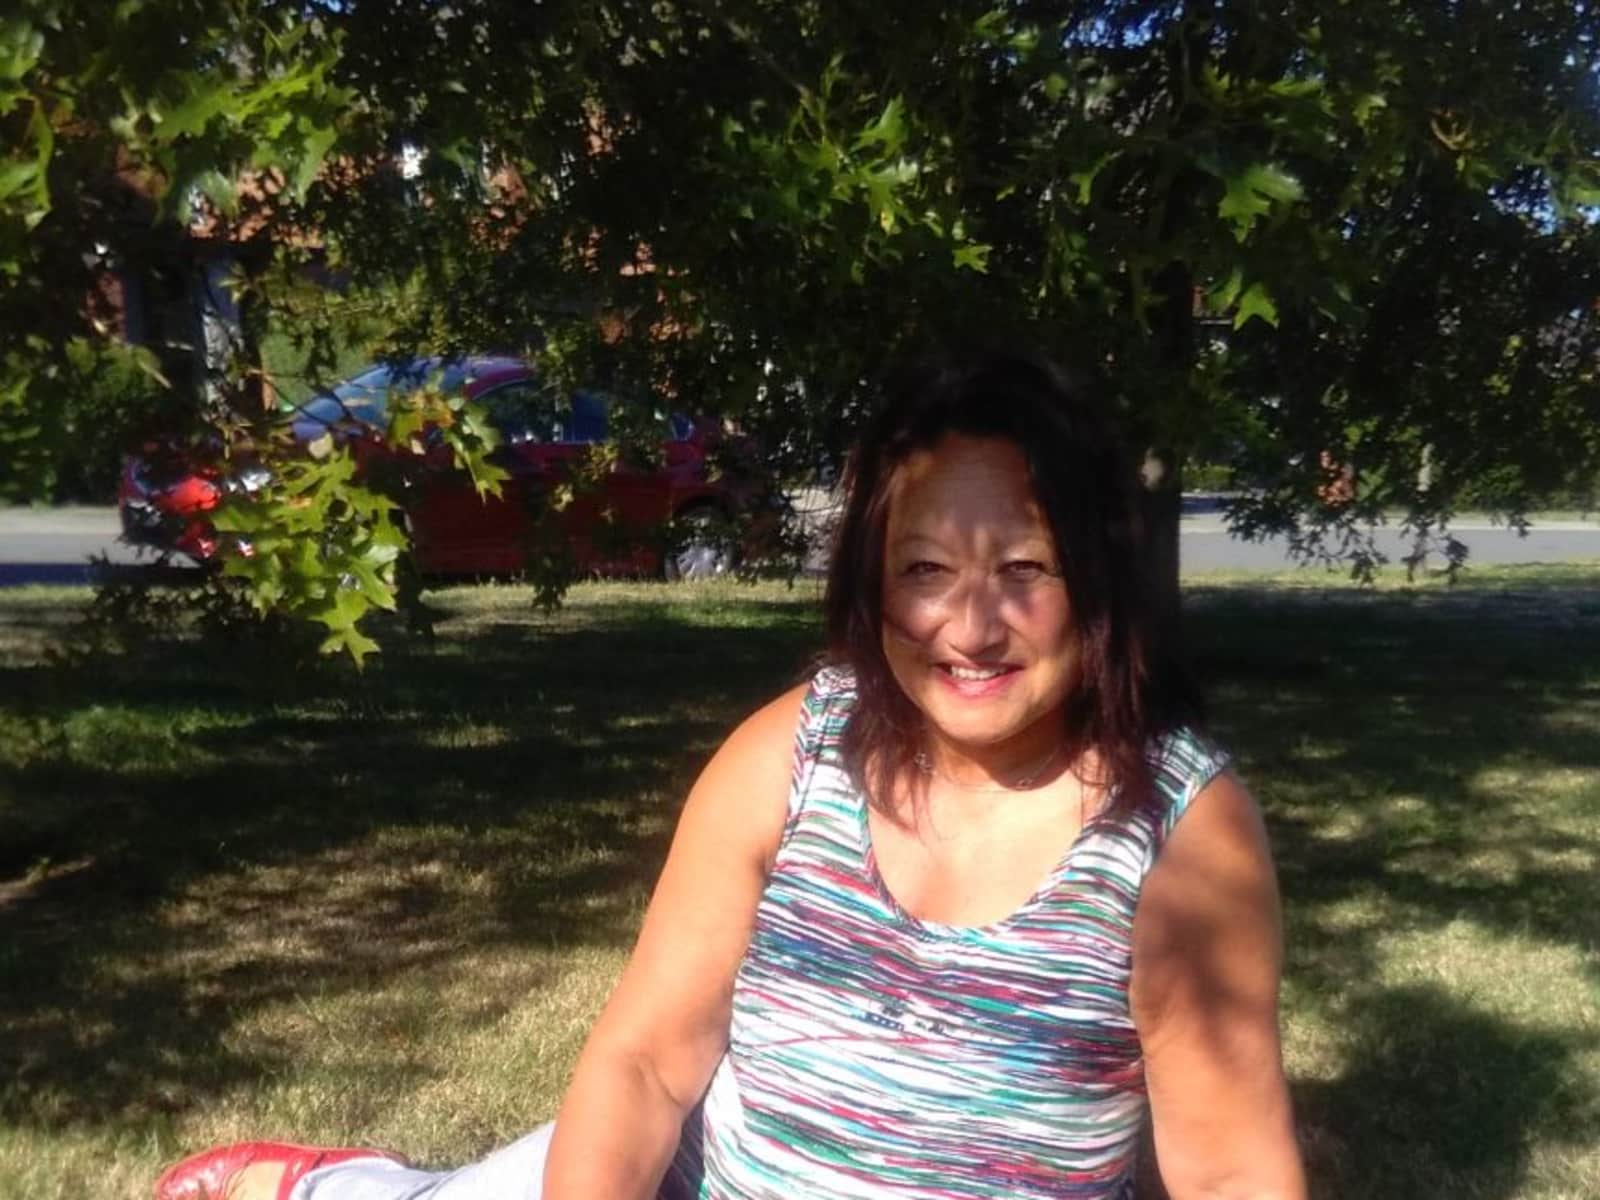 Joanie from Christchurch, New Zealand